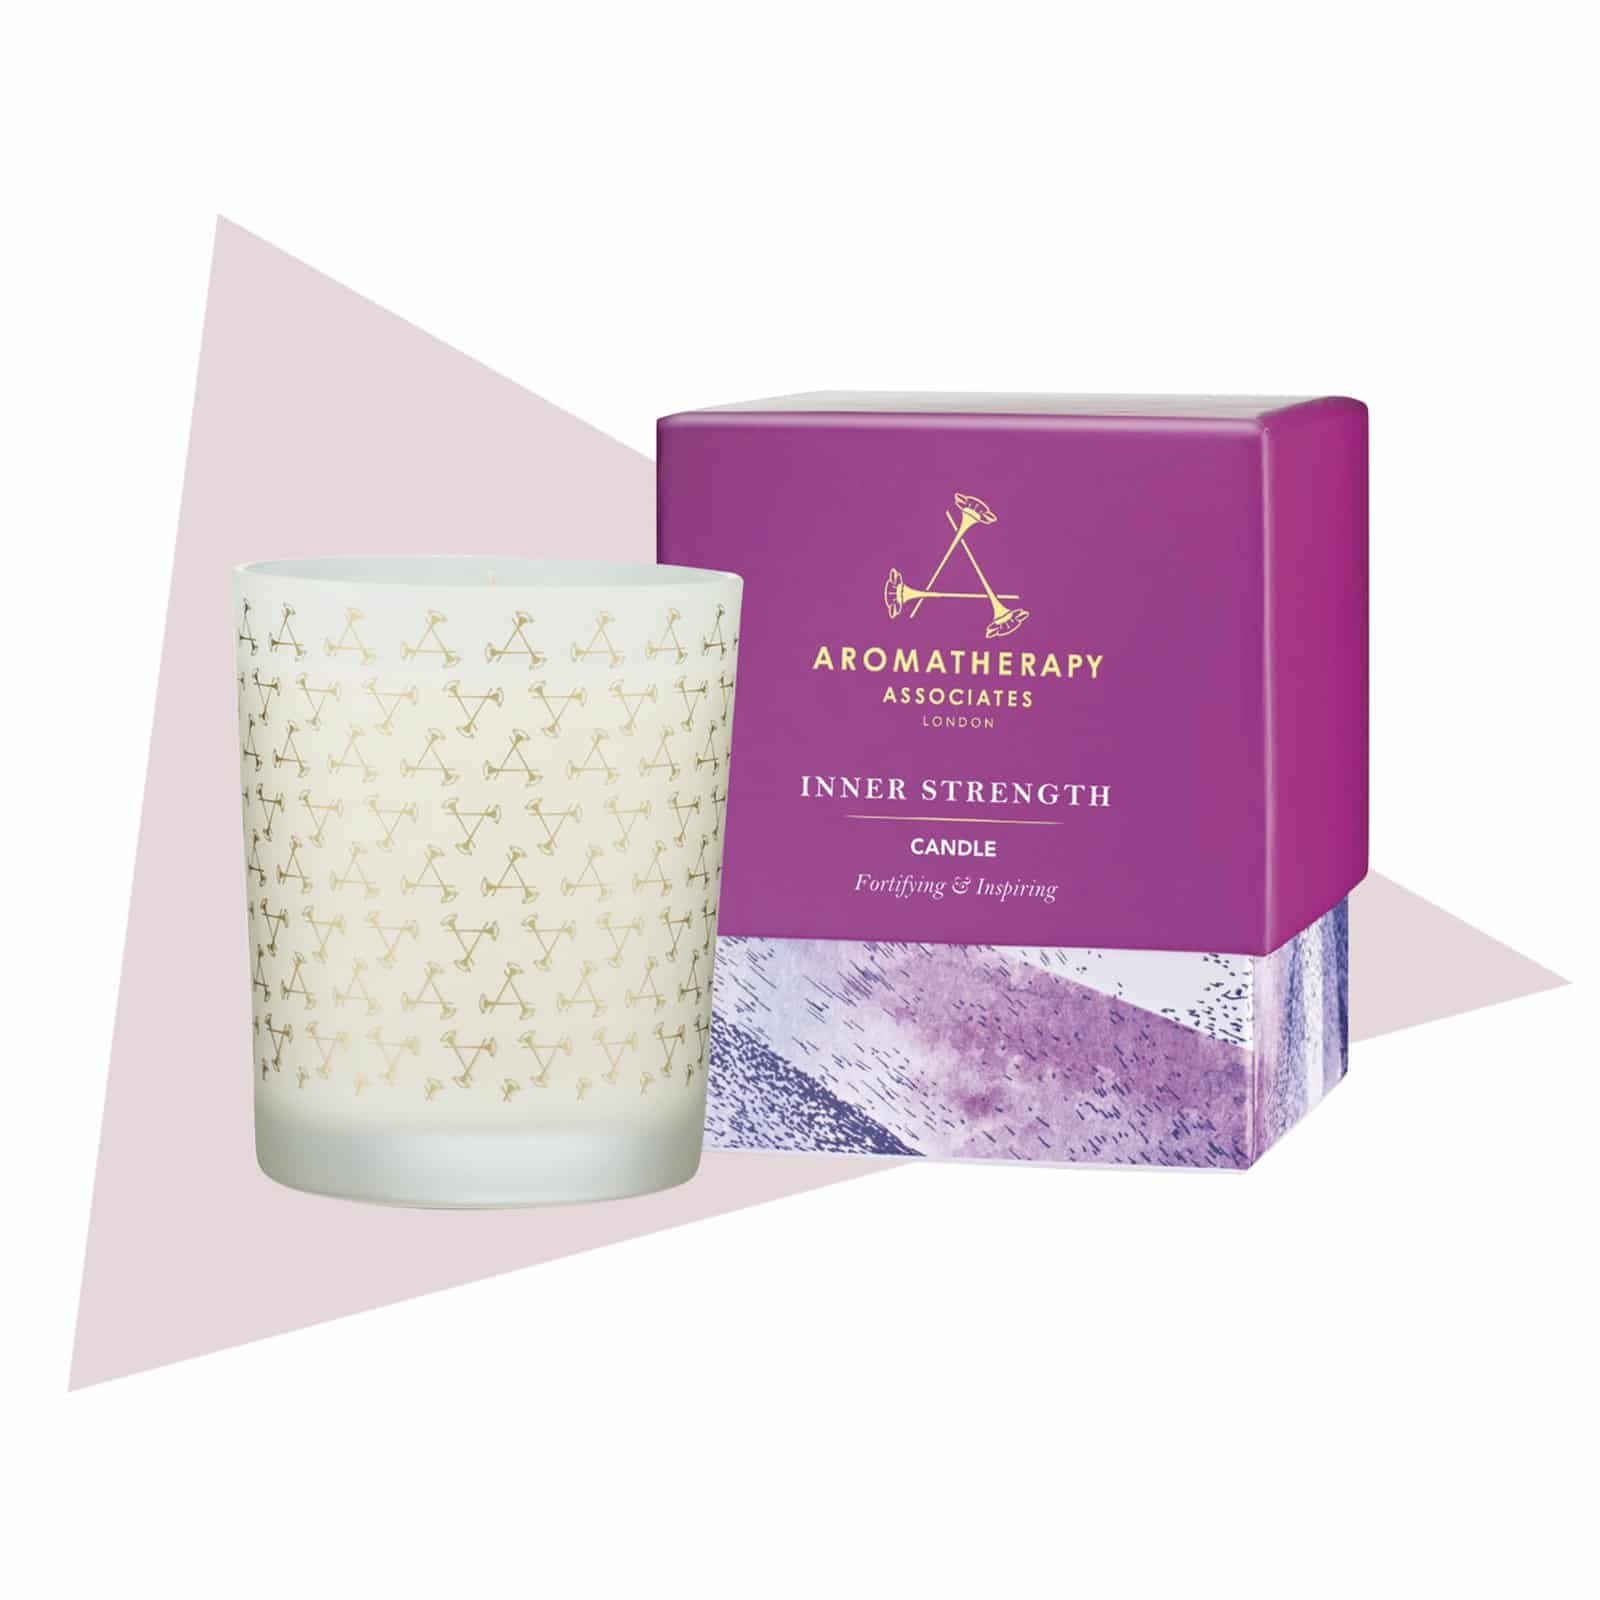 Aromatherapy-Associates-Candle-Inner-Strength-Candle